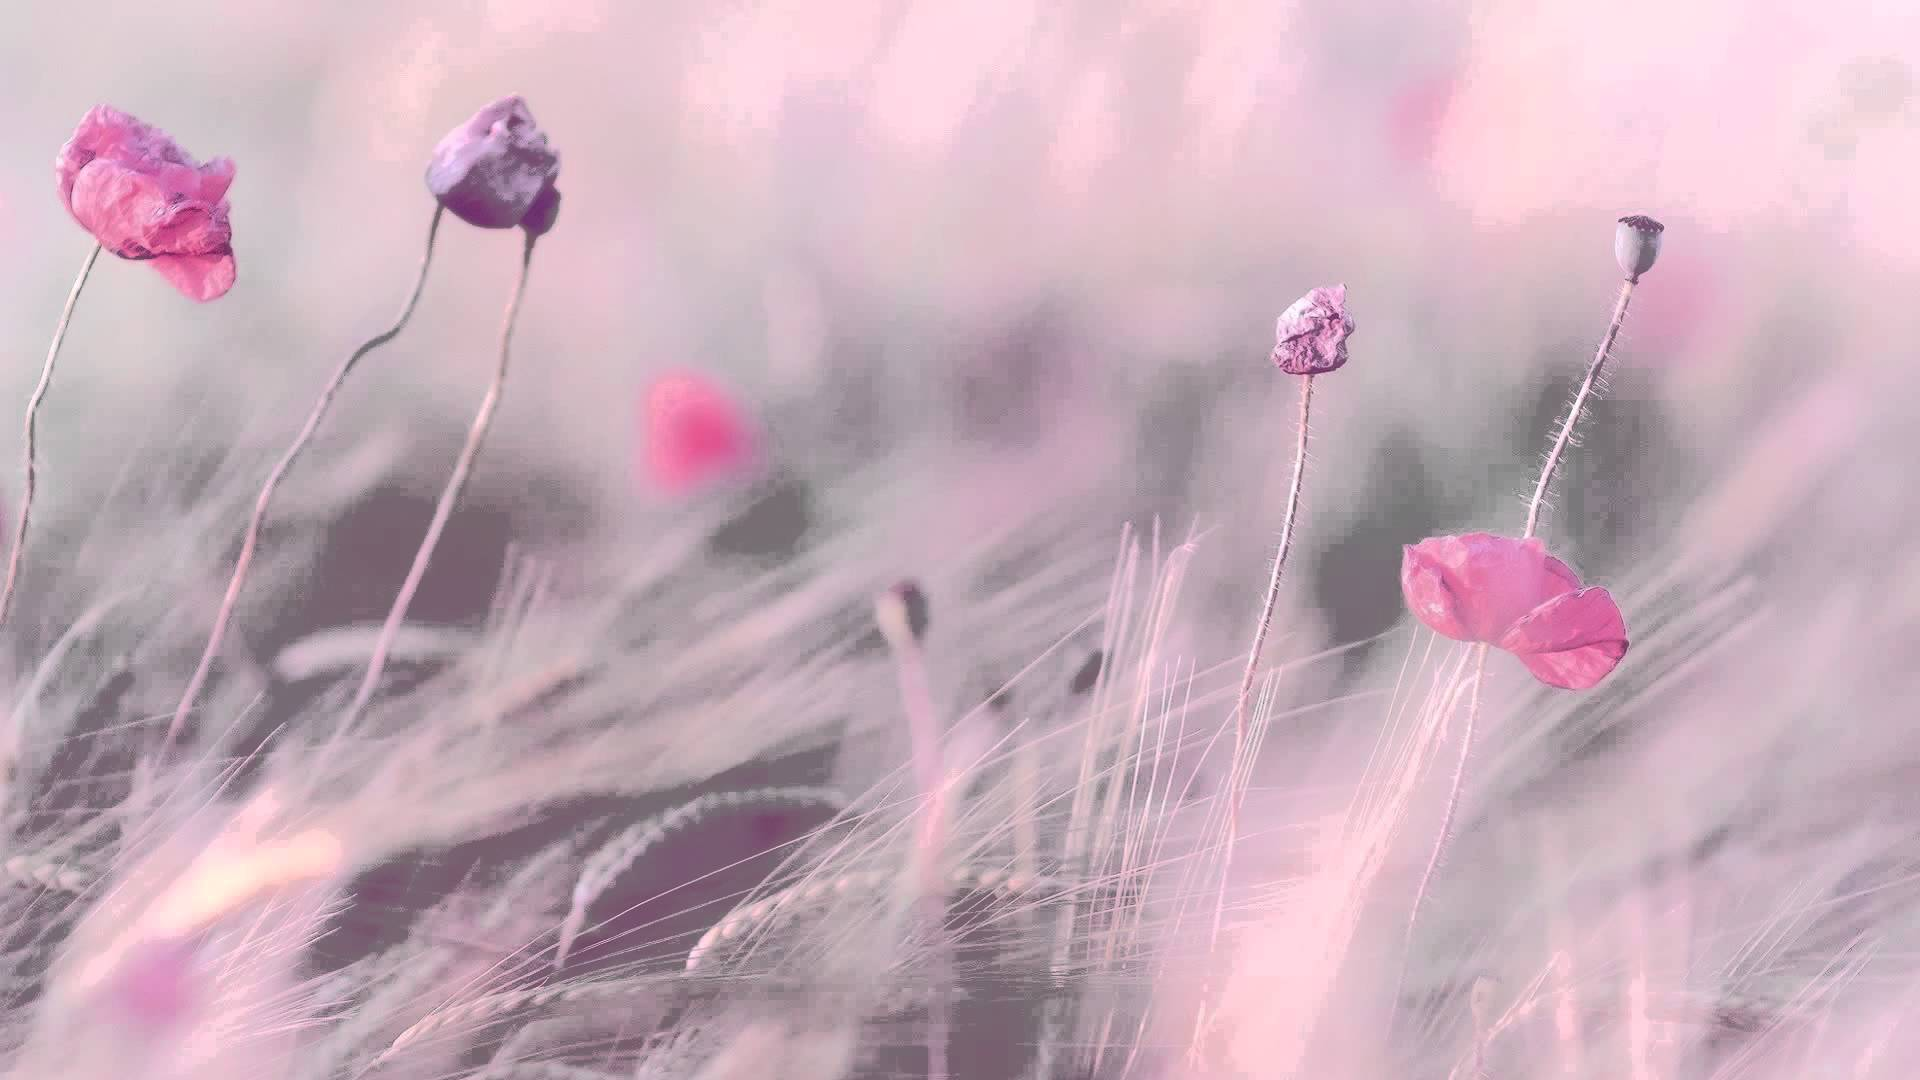 Free Download Hours Best Relaxing Music Romantic Piano 1920x1080 For Your Desktop Mobile Tablet Explore 43 Best Soothing Background Wallpapers Most Beautiful Relaxing Wallpapers Free Soothing Desktop Wallpaper Relaxation Wallpaper